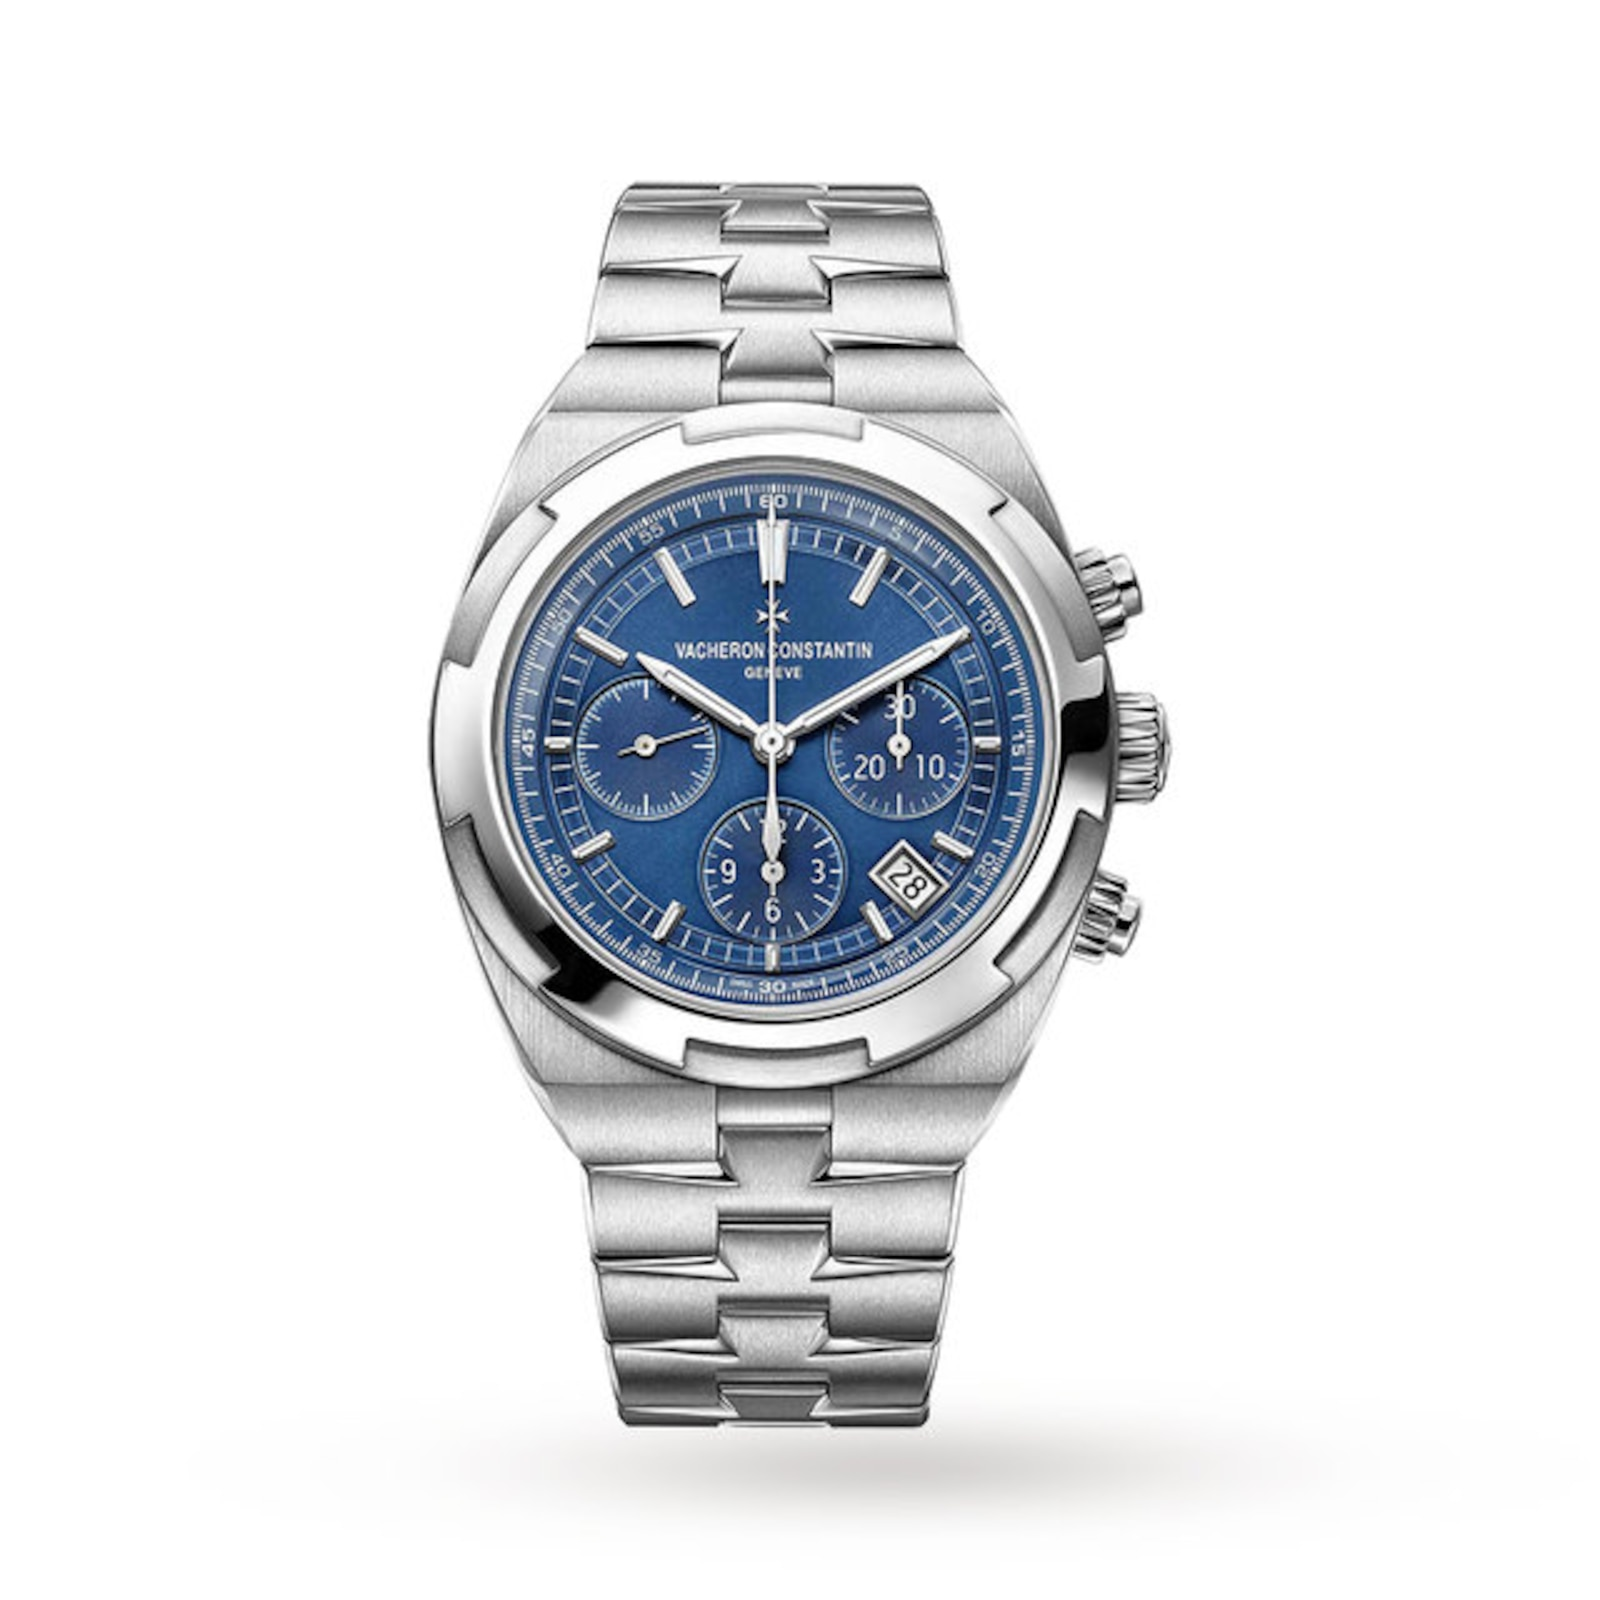 Vacheron Constantin Overseas Chronograph Mens Watch